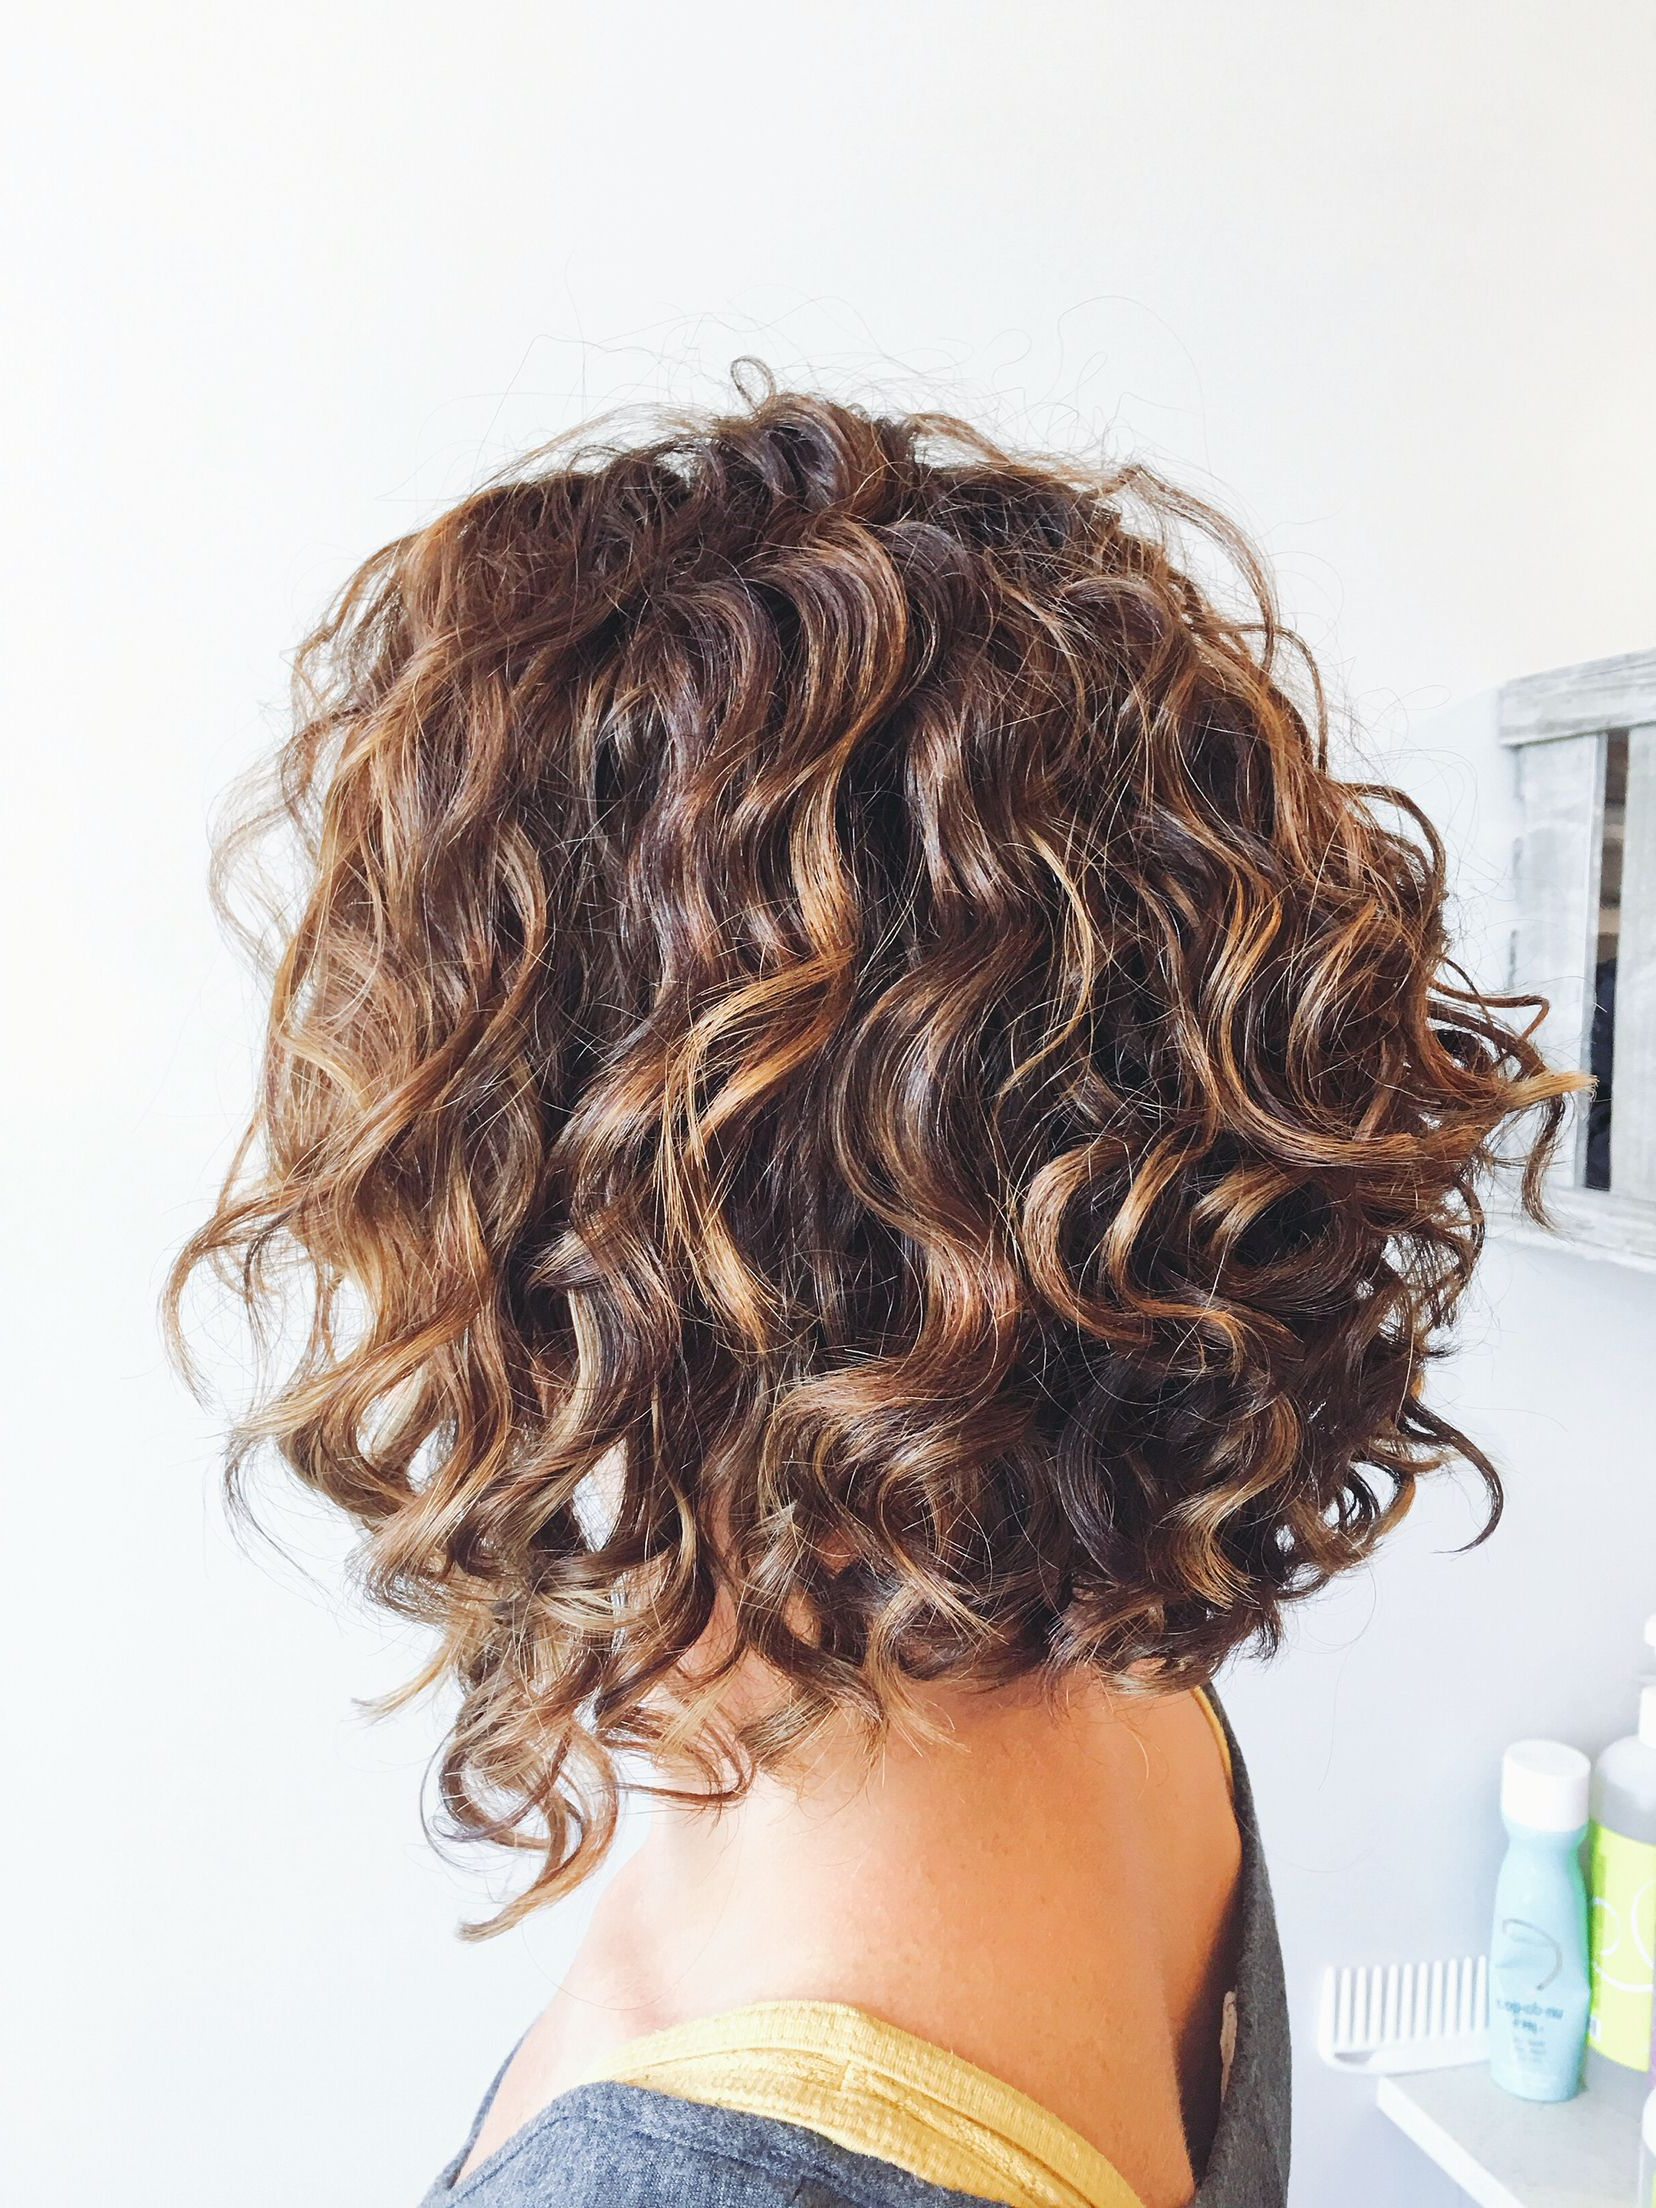 Pinnaty Ballestero On Hairstyles | Pinterest | Layering, Curly In Curly Angled Bob Hairstyles (View 7 of 25)